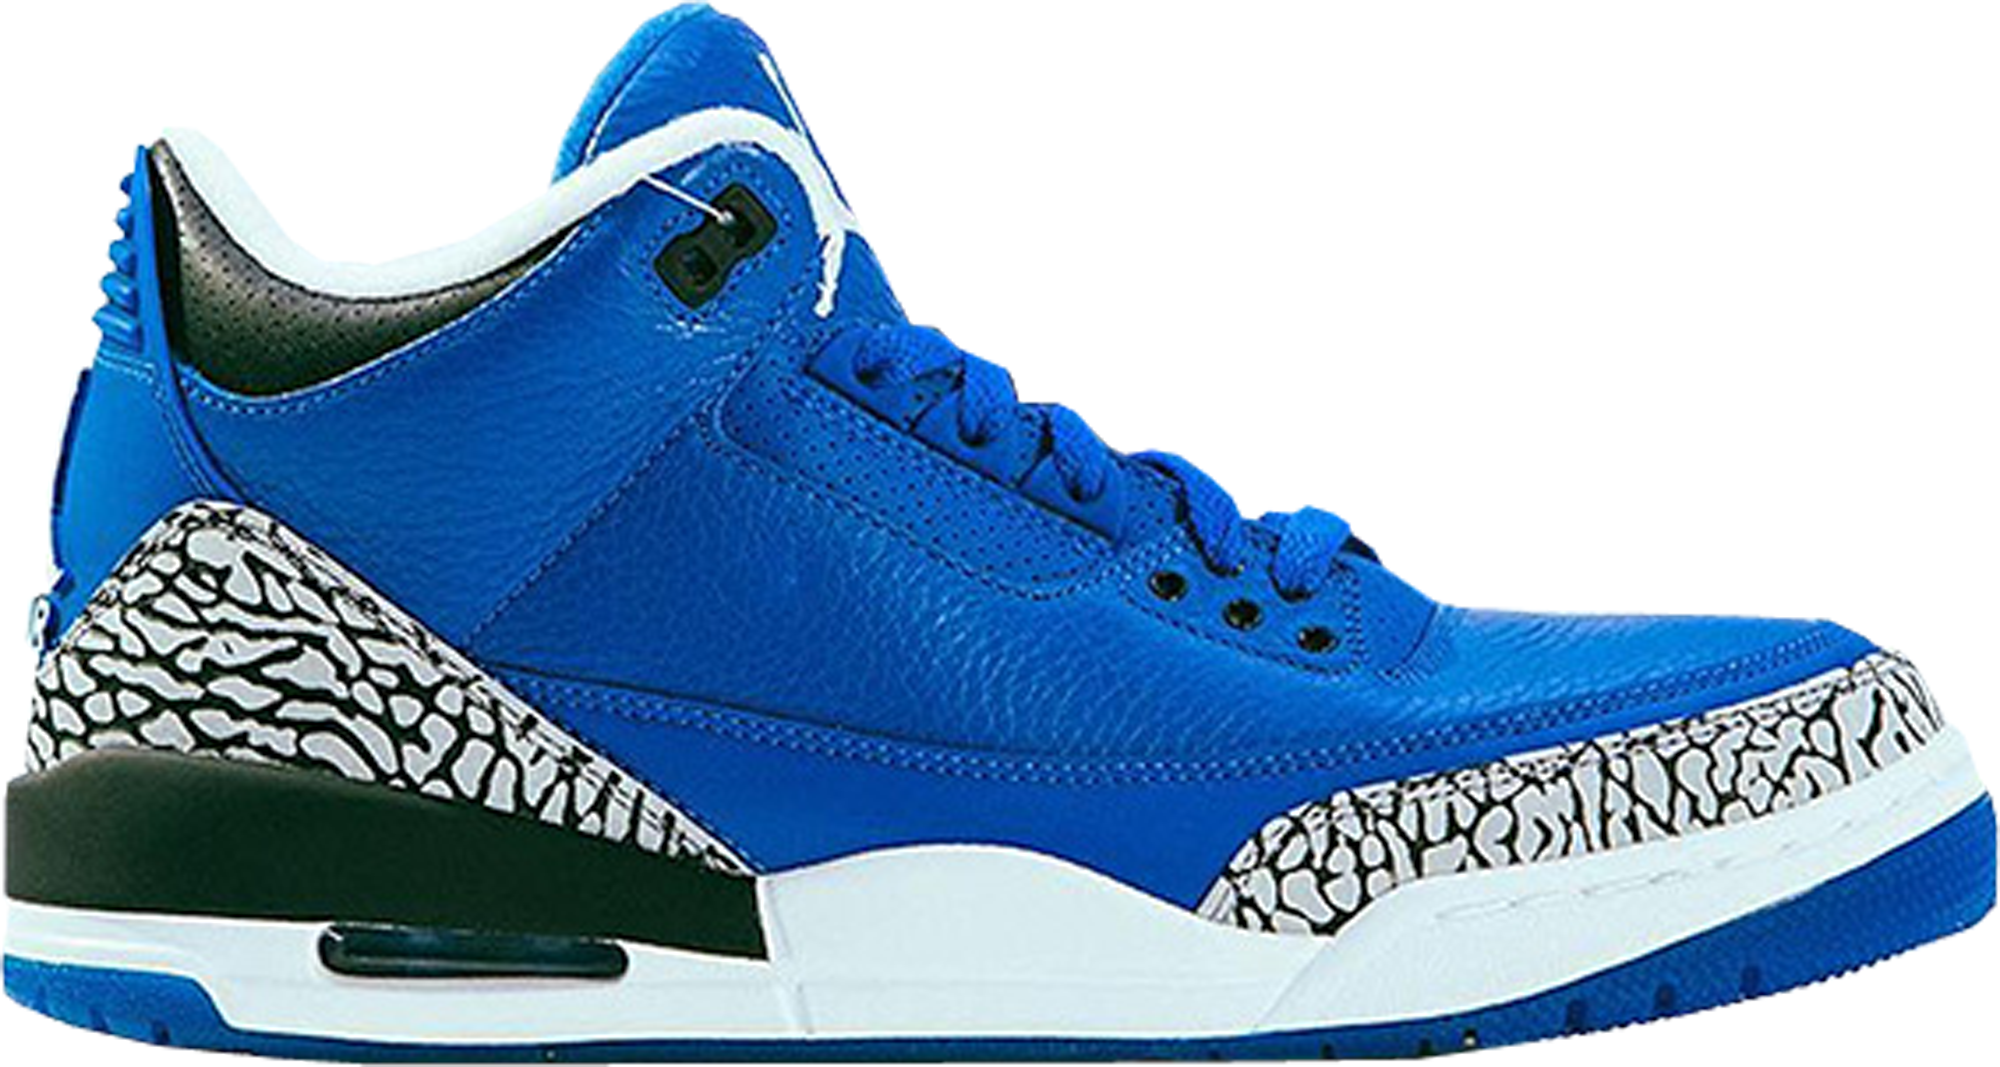 Jordan 3 Retro DJ Khaled Another One